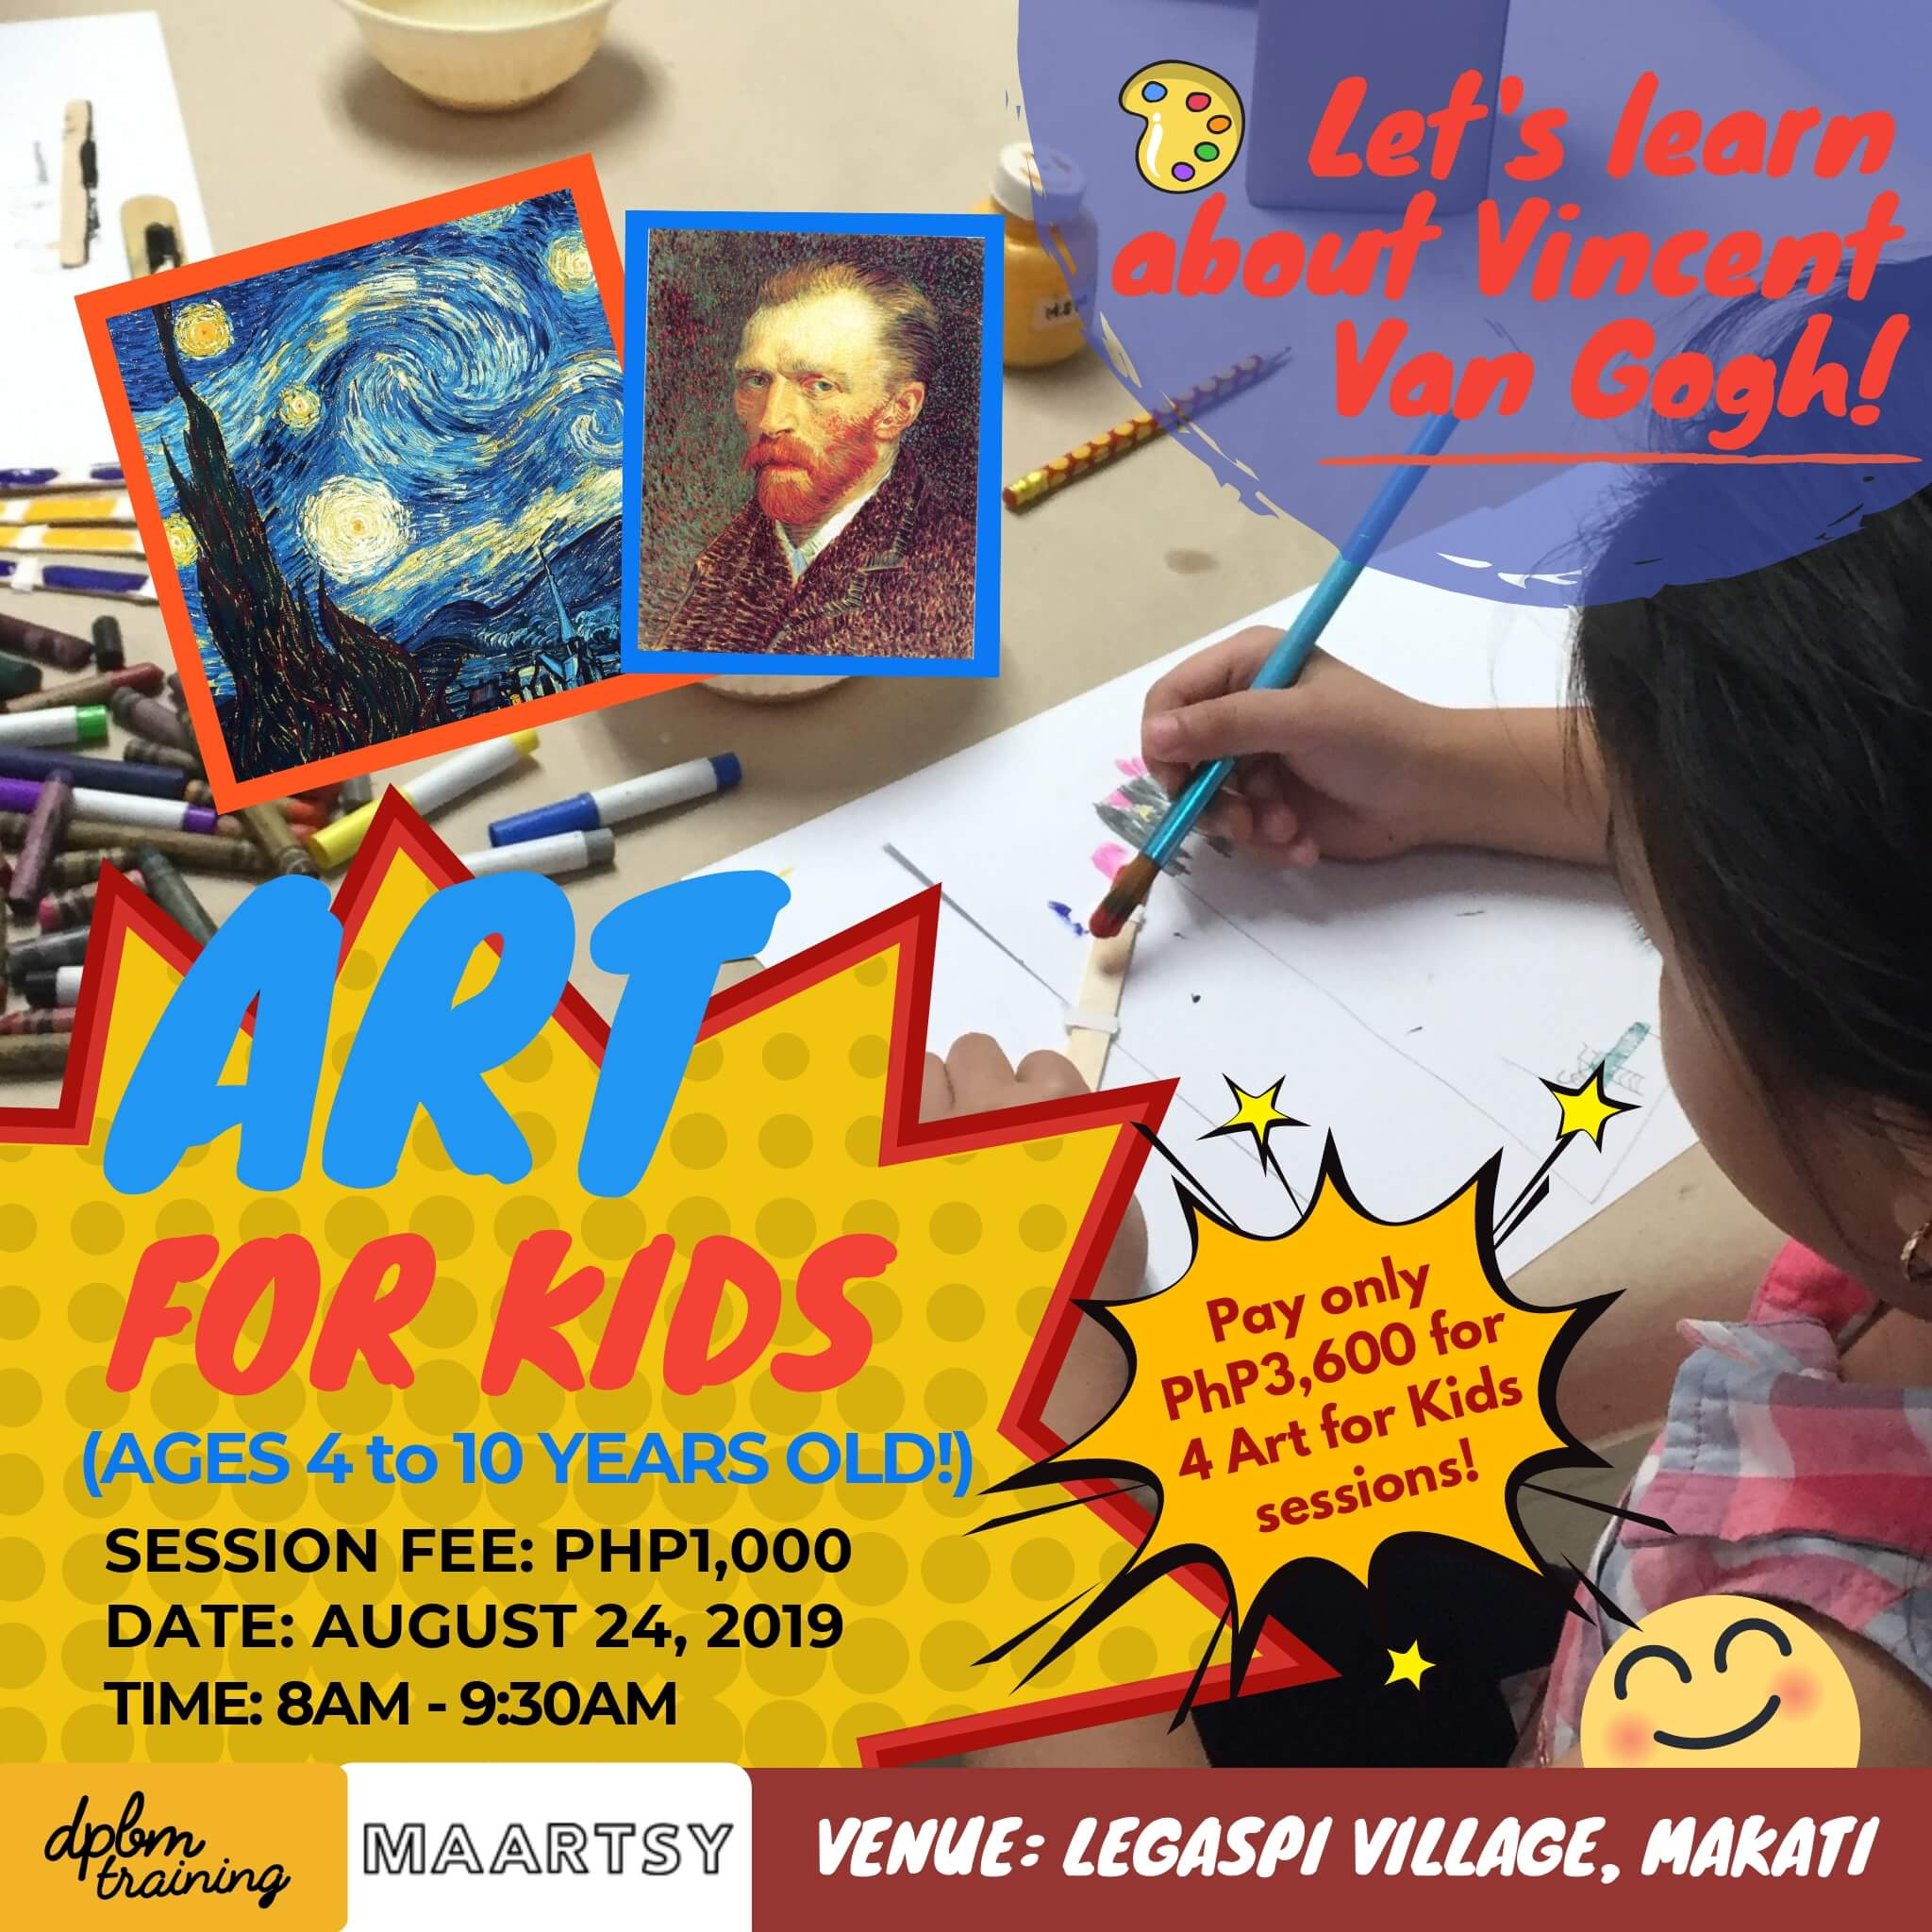 MAARTSY Offers Arts & Crafts Workshops That Are Exclusive for Children